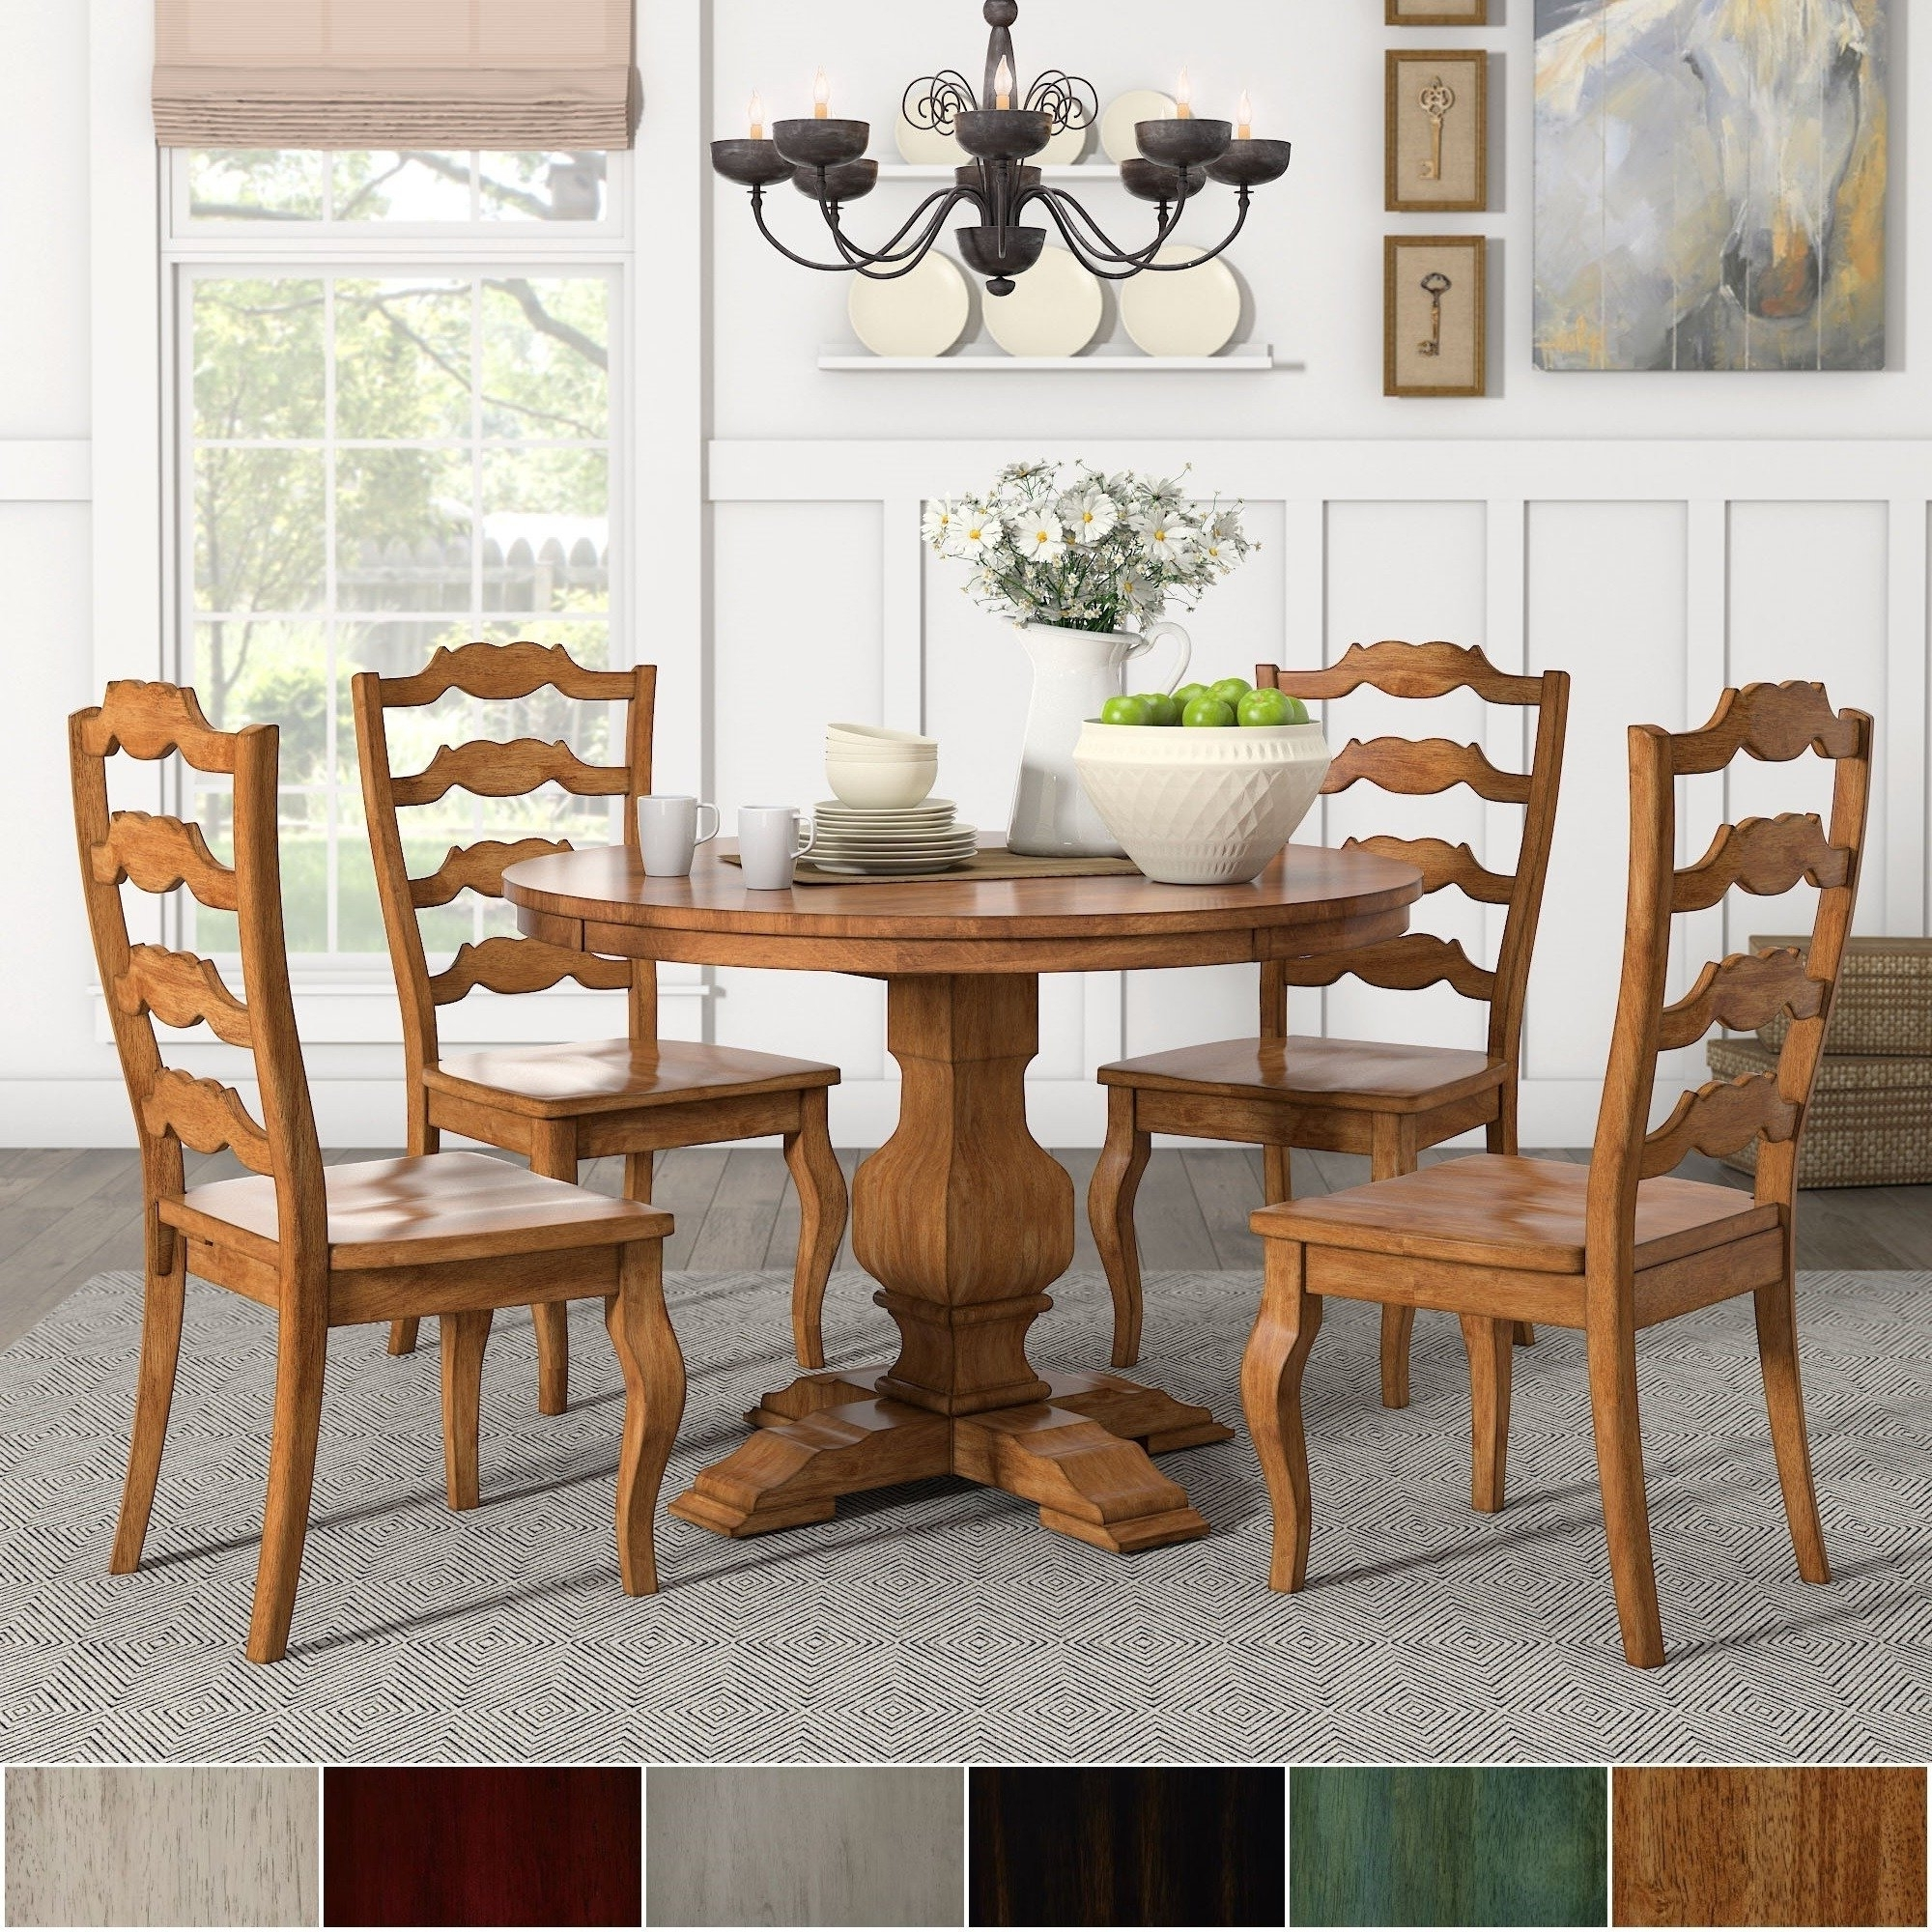 Eleanor Oak Round Soild Wood Top Ladder Back 5 Piece Dining Set Regarding Most Recently Released Caden 5 Piece Round Dining Sets With Upholstered Side Chairs (View 3 of 25)